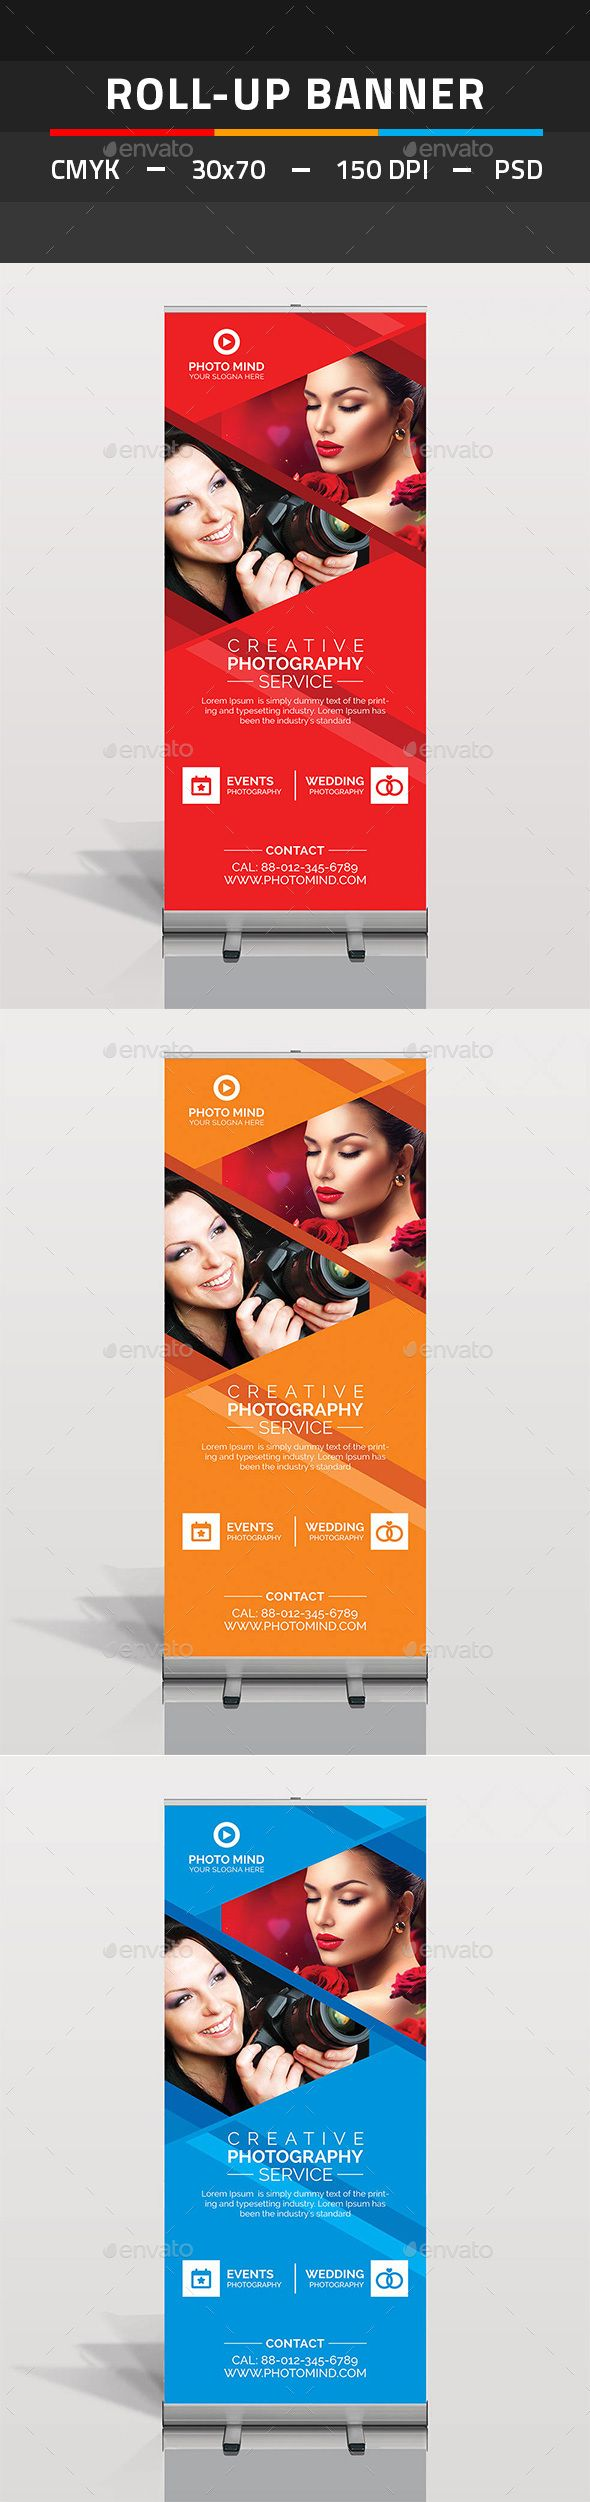 Photography Roll Up Banner by tauhid1989 This is a Photography Roll Up Banner Template. This template download contains 150 DPI, Print-Ready, CMYK, Layerd PSD files. All m